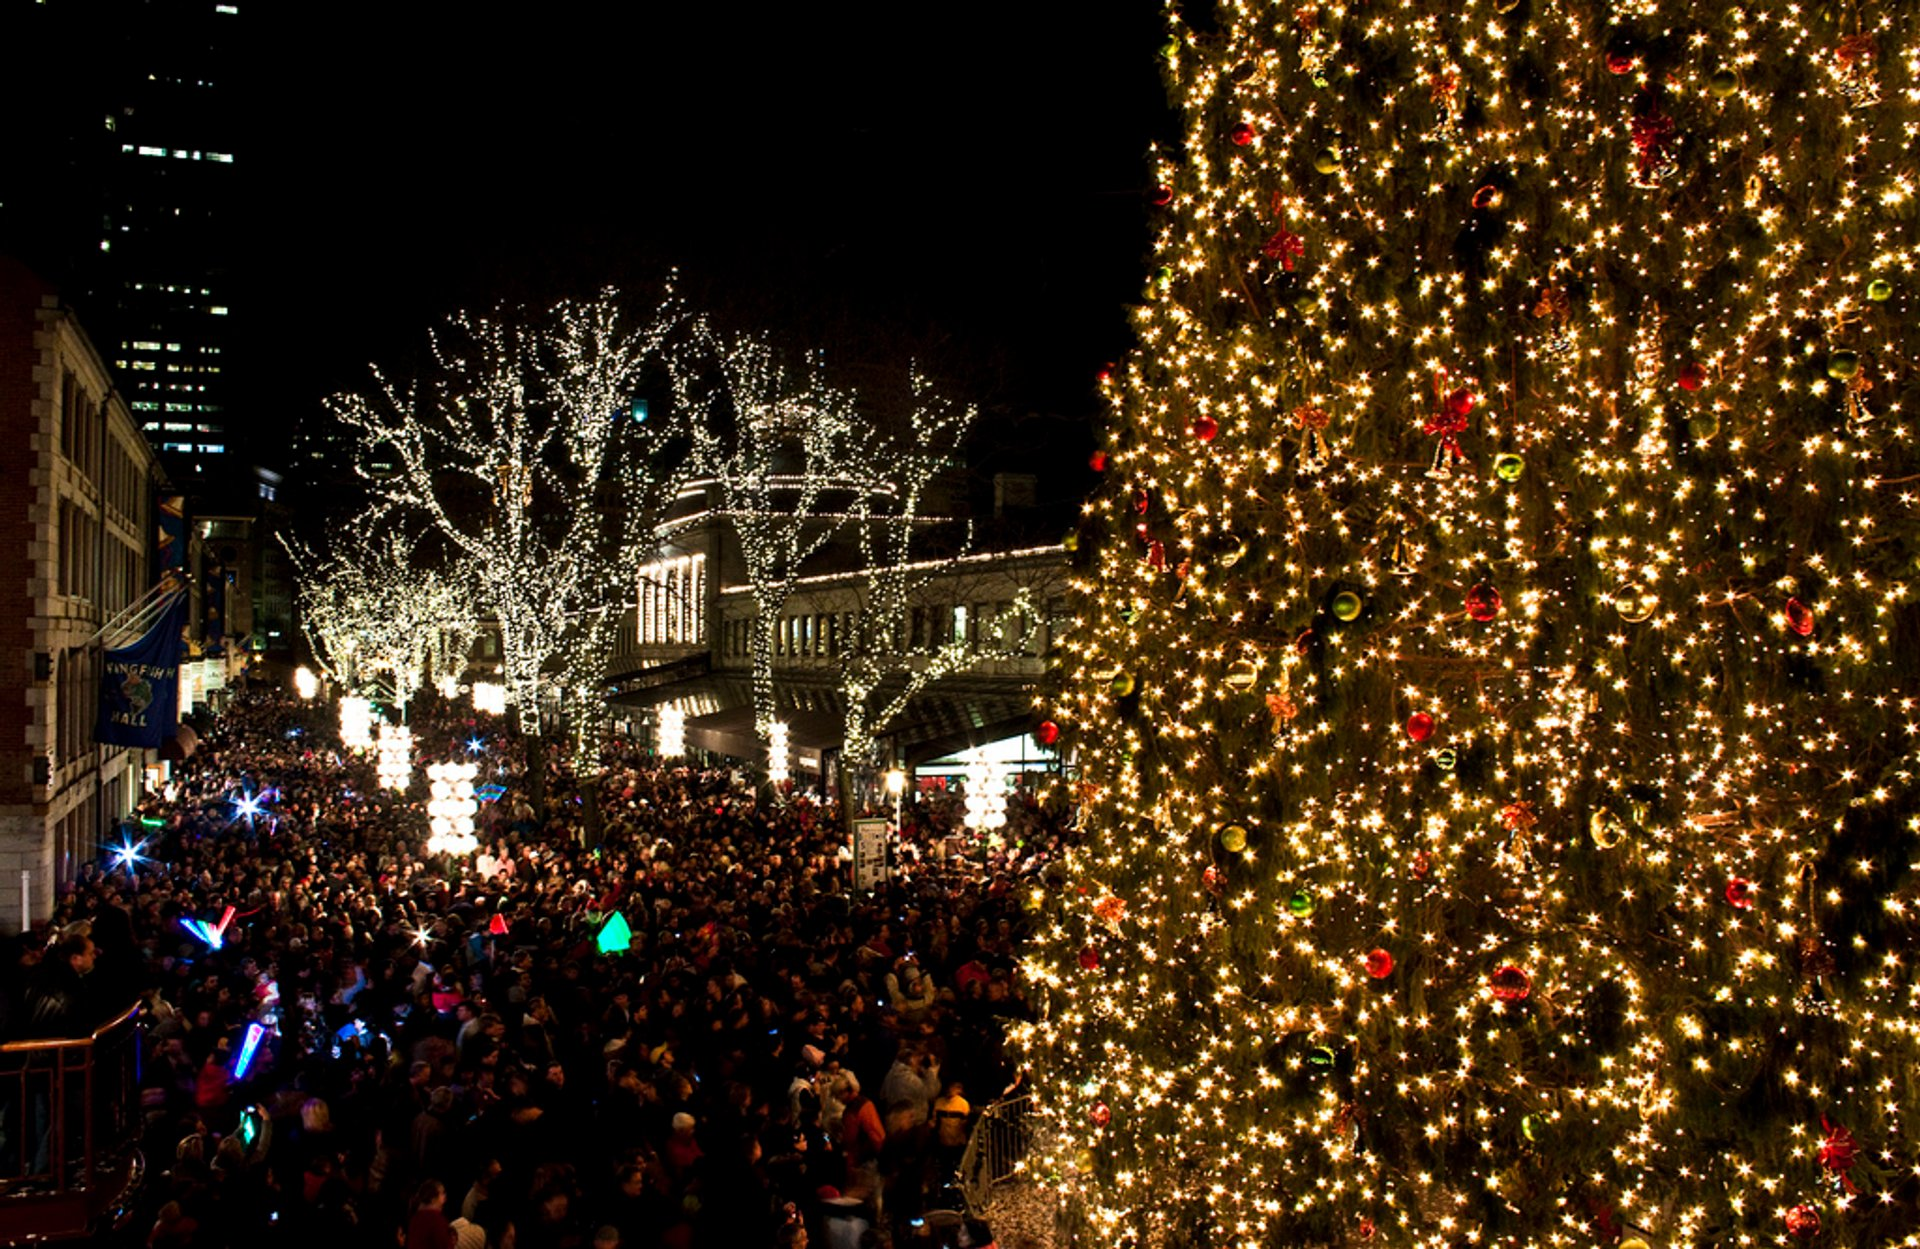 Tree Lighting Ceremony Faneuil Hall Christmas Tree Lighting 2019 In Boston - Dates & Map